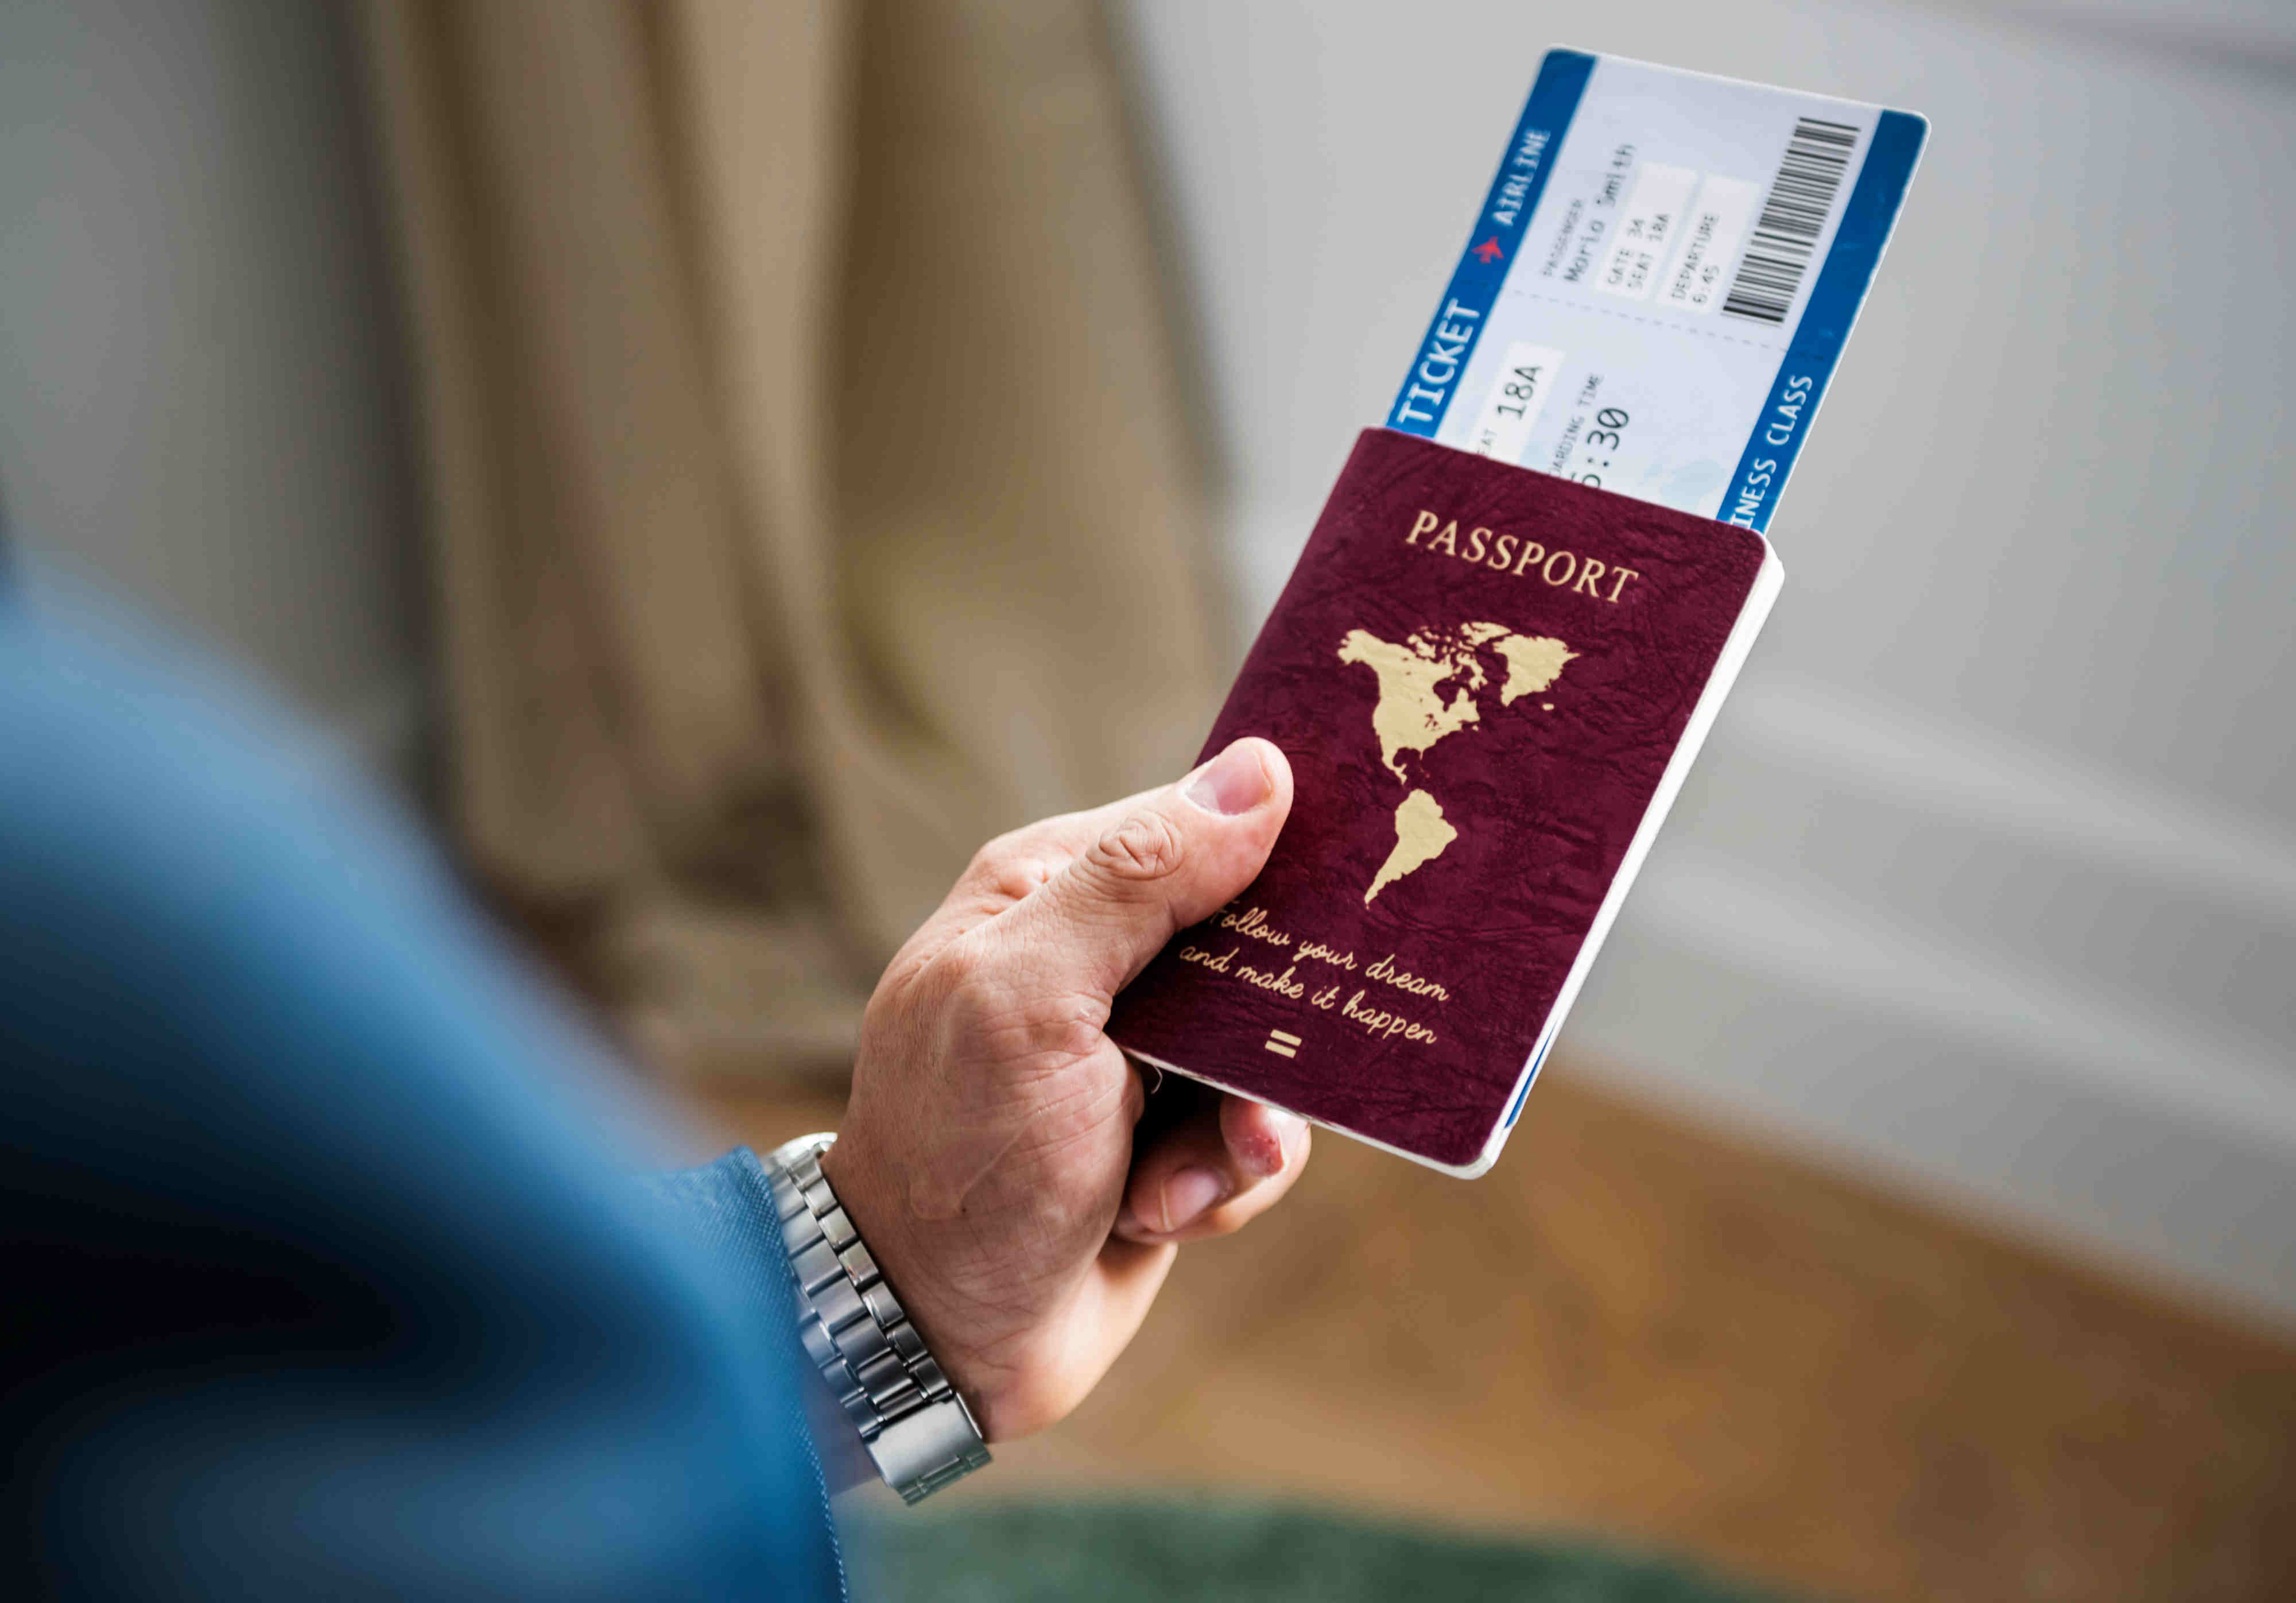 Passport in a man's hand with a boarding pass sticking out